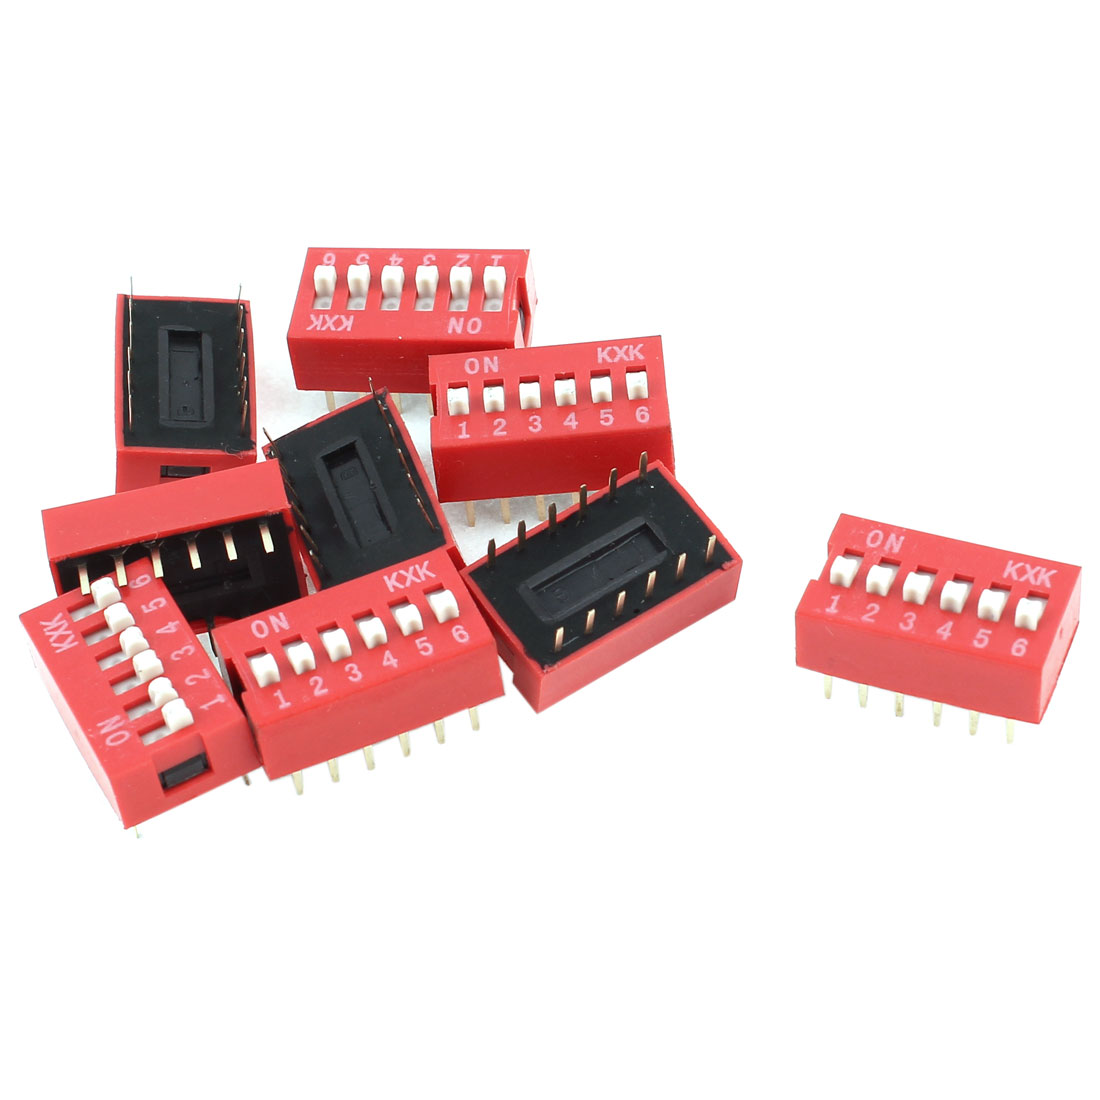 10 Pieces DIP Mount Dual Row 12 Pin 6 Positions Sliding Switch 2.54mm Pitch Red